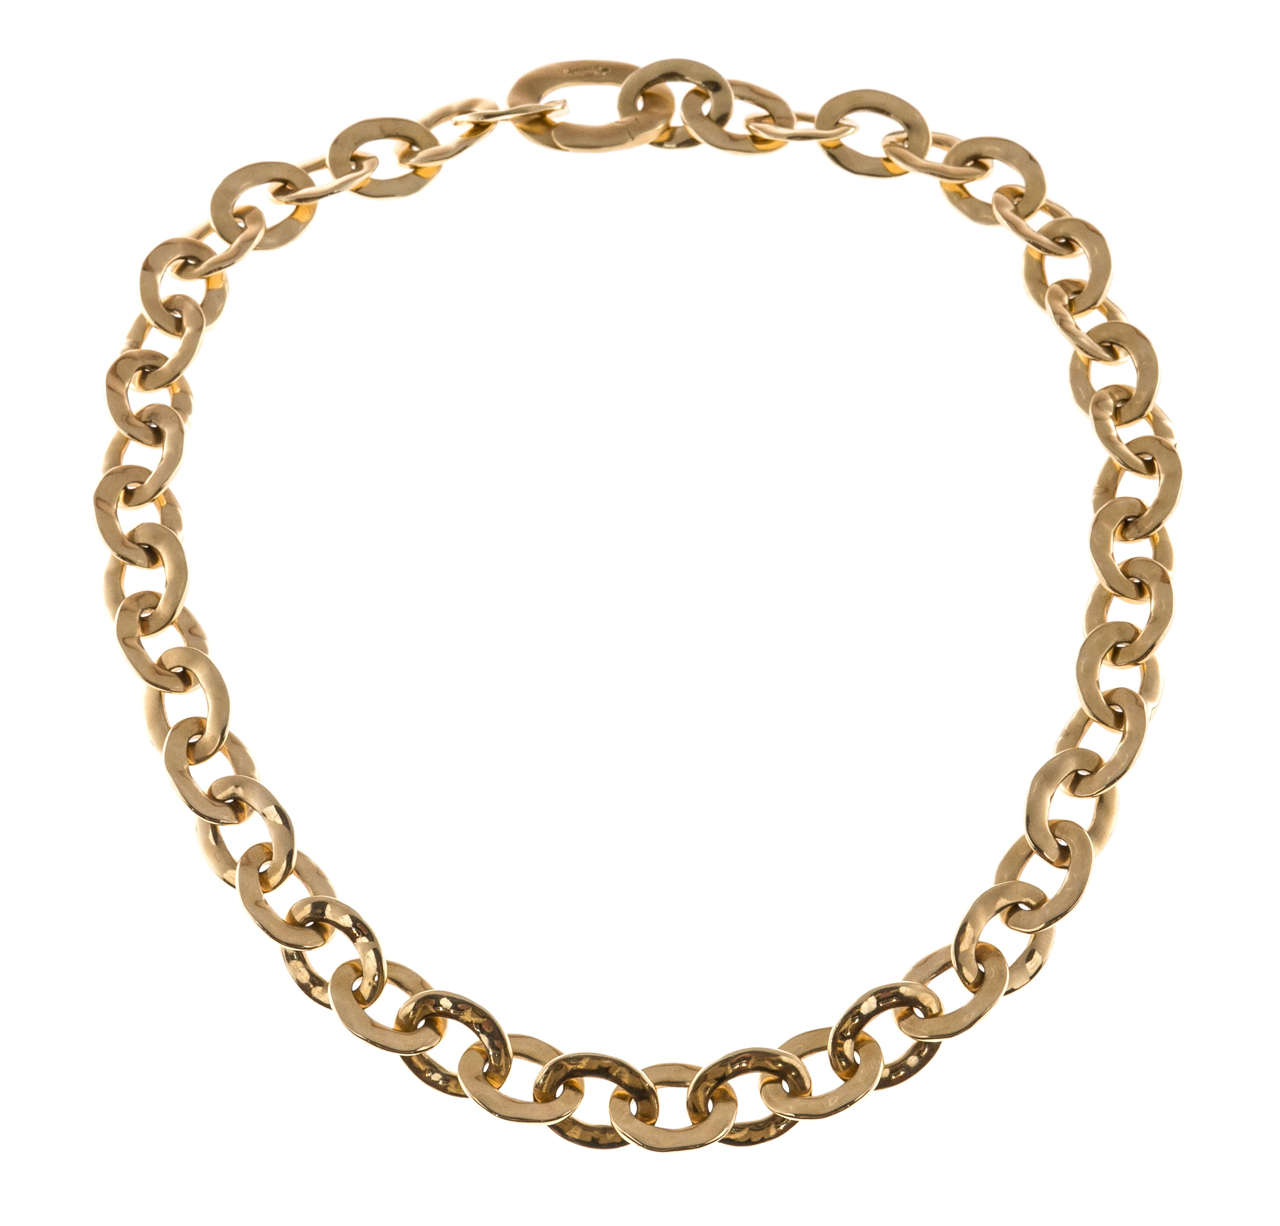 Authentic Pomellato solid textured graduated oval 18k yellow gold  link 17 inch necklace. Large textured link hinged open as a catch.  18k Yellow gold Oval link necklace 11.88 to 17.64mm Tested: 18k Stamped: 750 Hallmark: Pomellato Length: 17